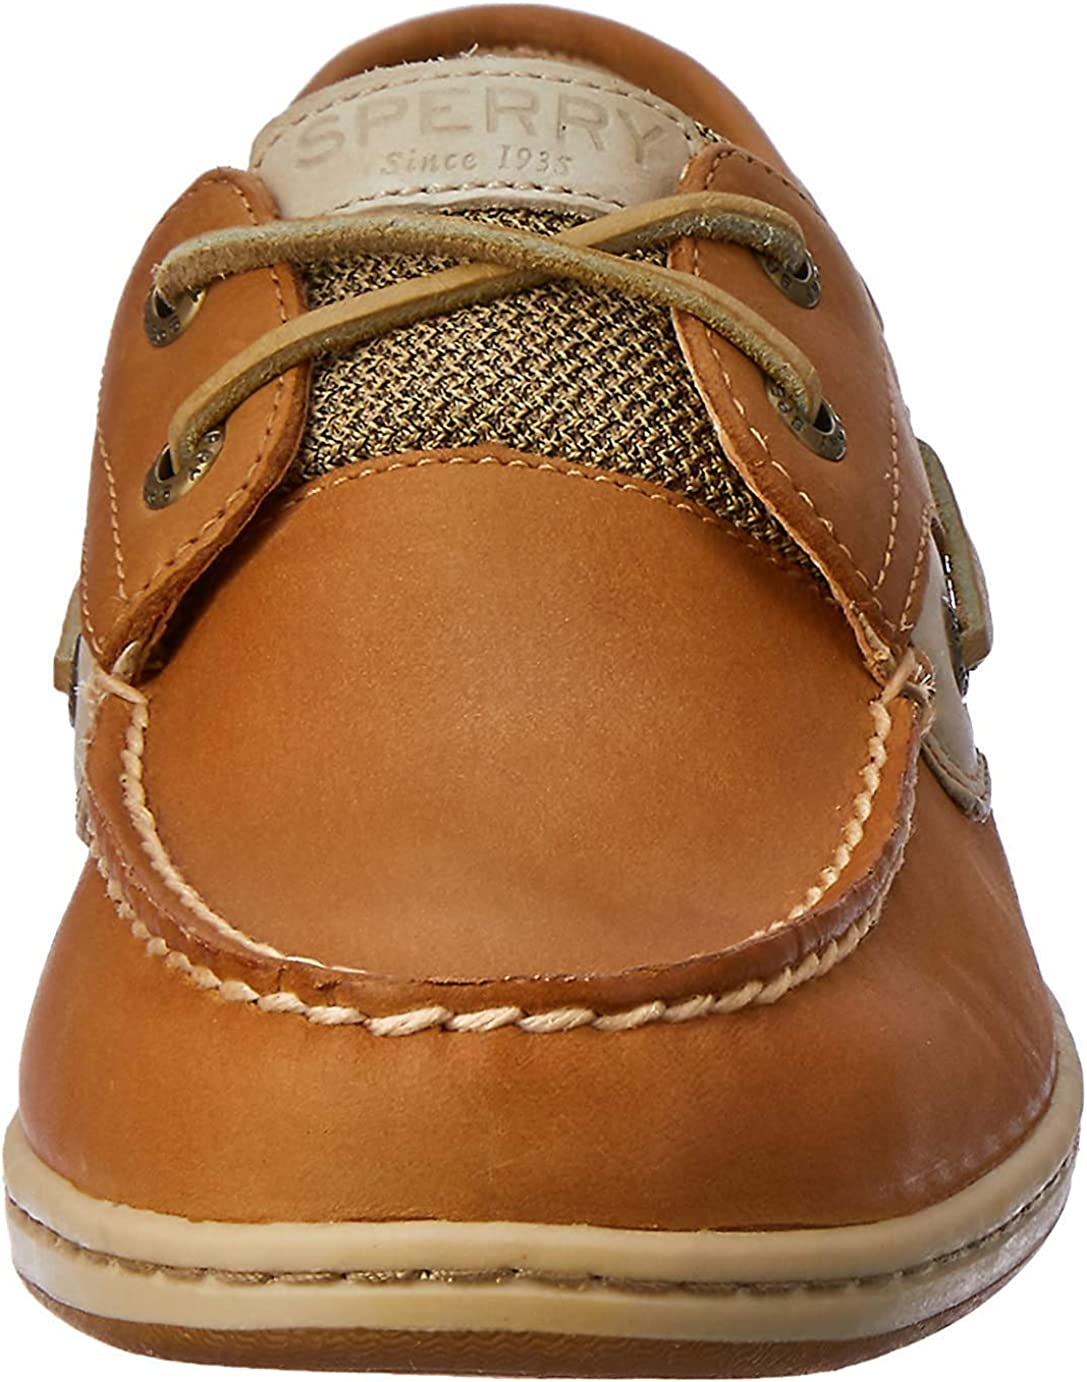 Sperry Top-Sider Koifish Chaussure Bateau Femme